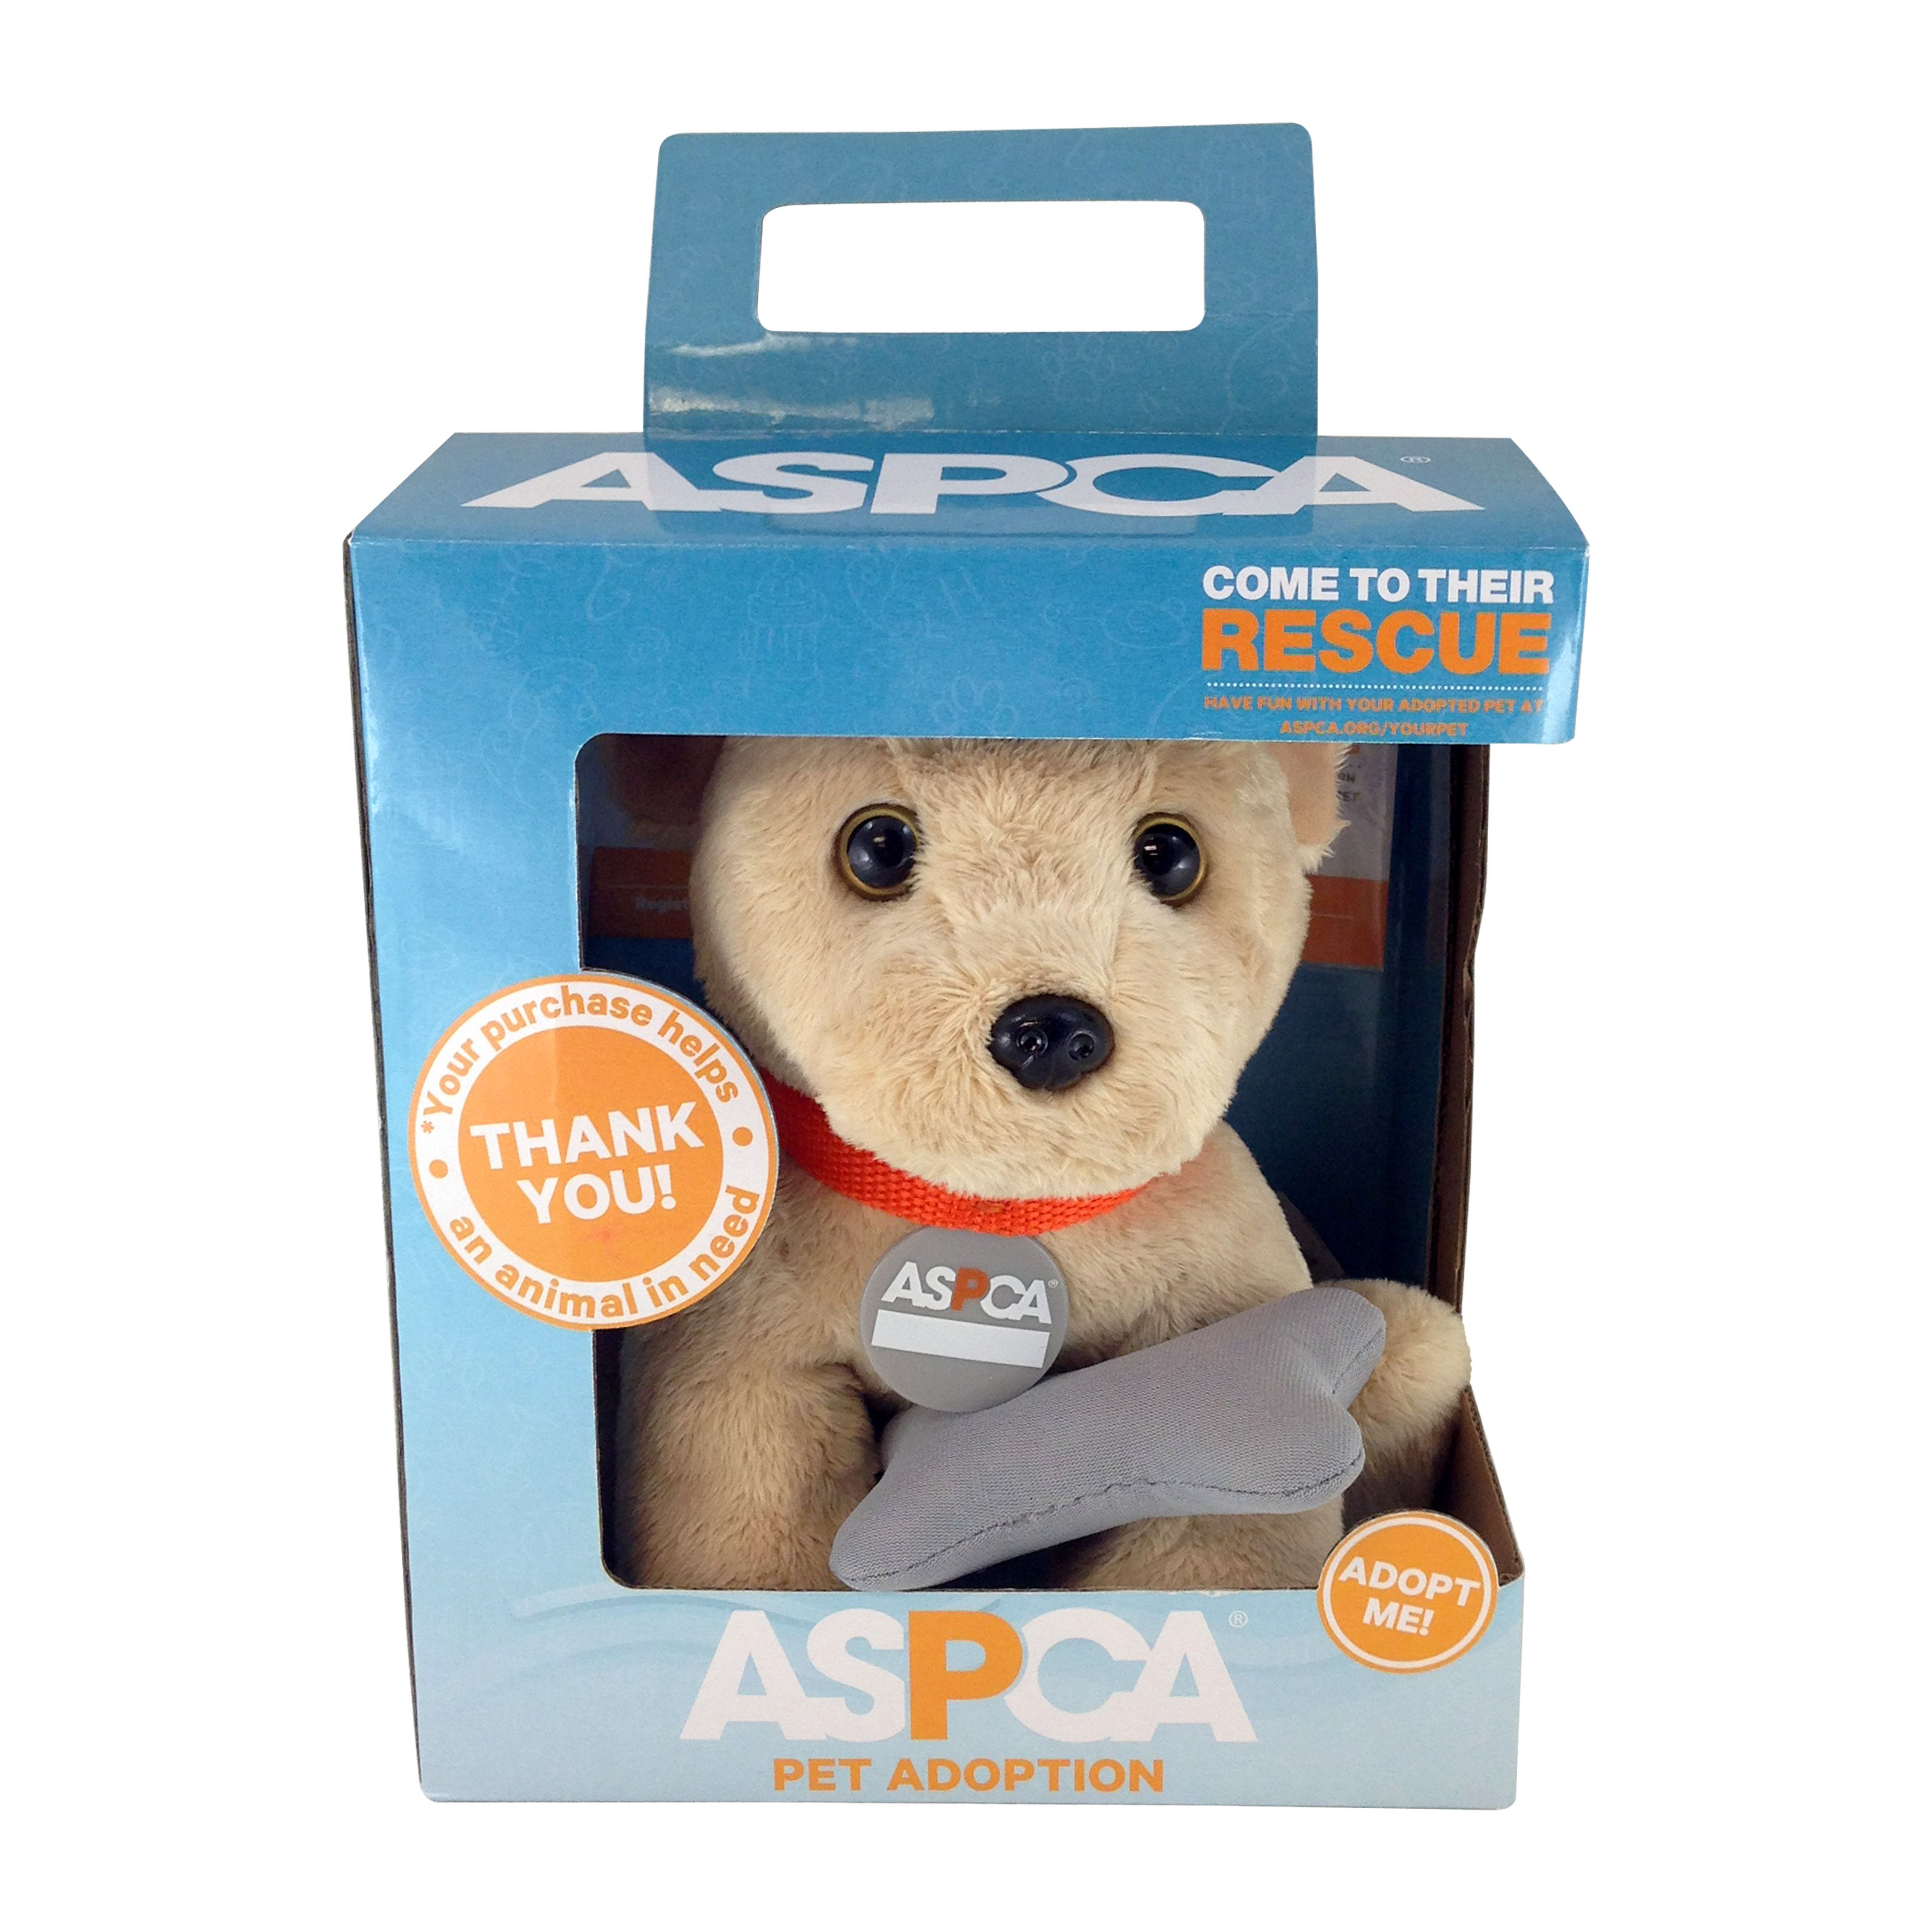 New Aspca Plush Toys Now Available Personalized Dog Collars